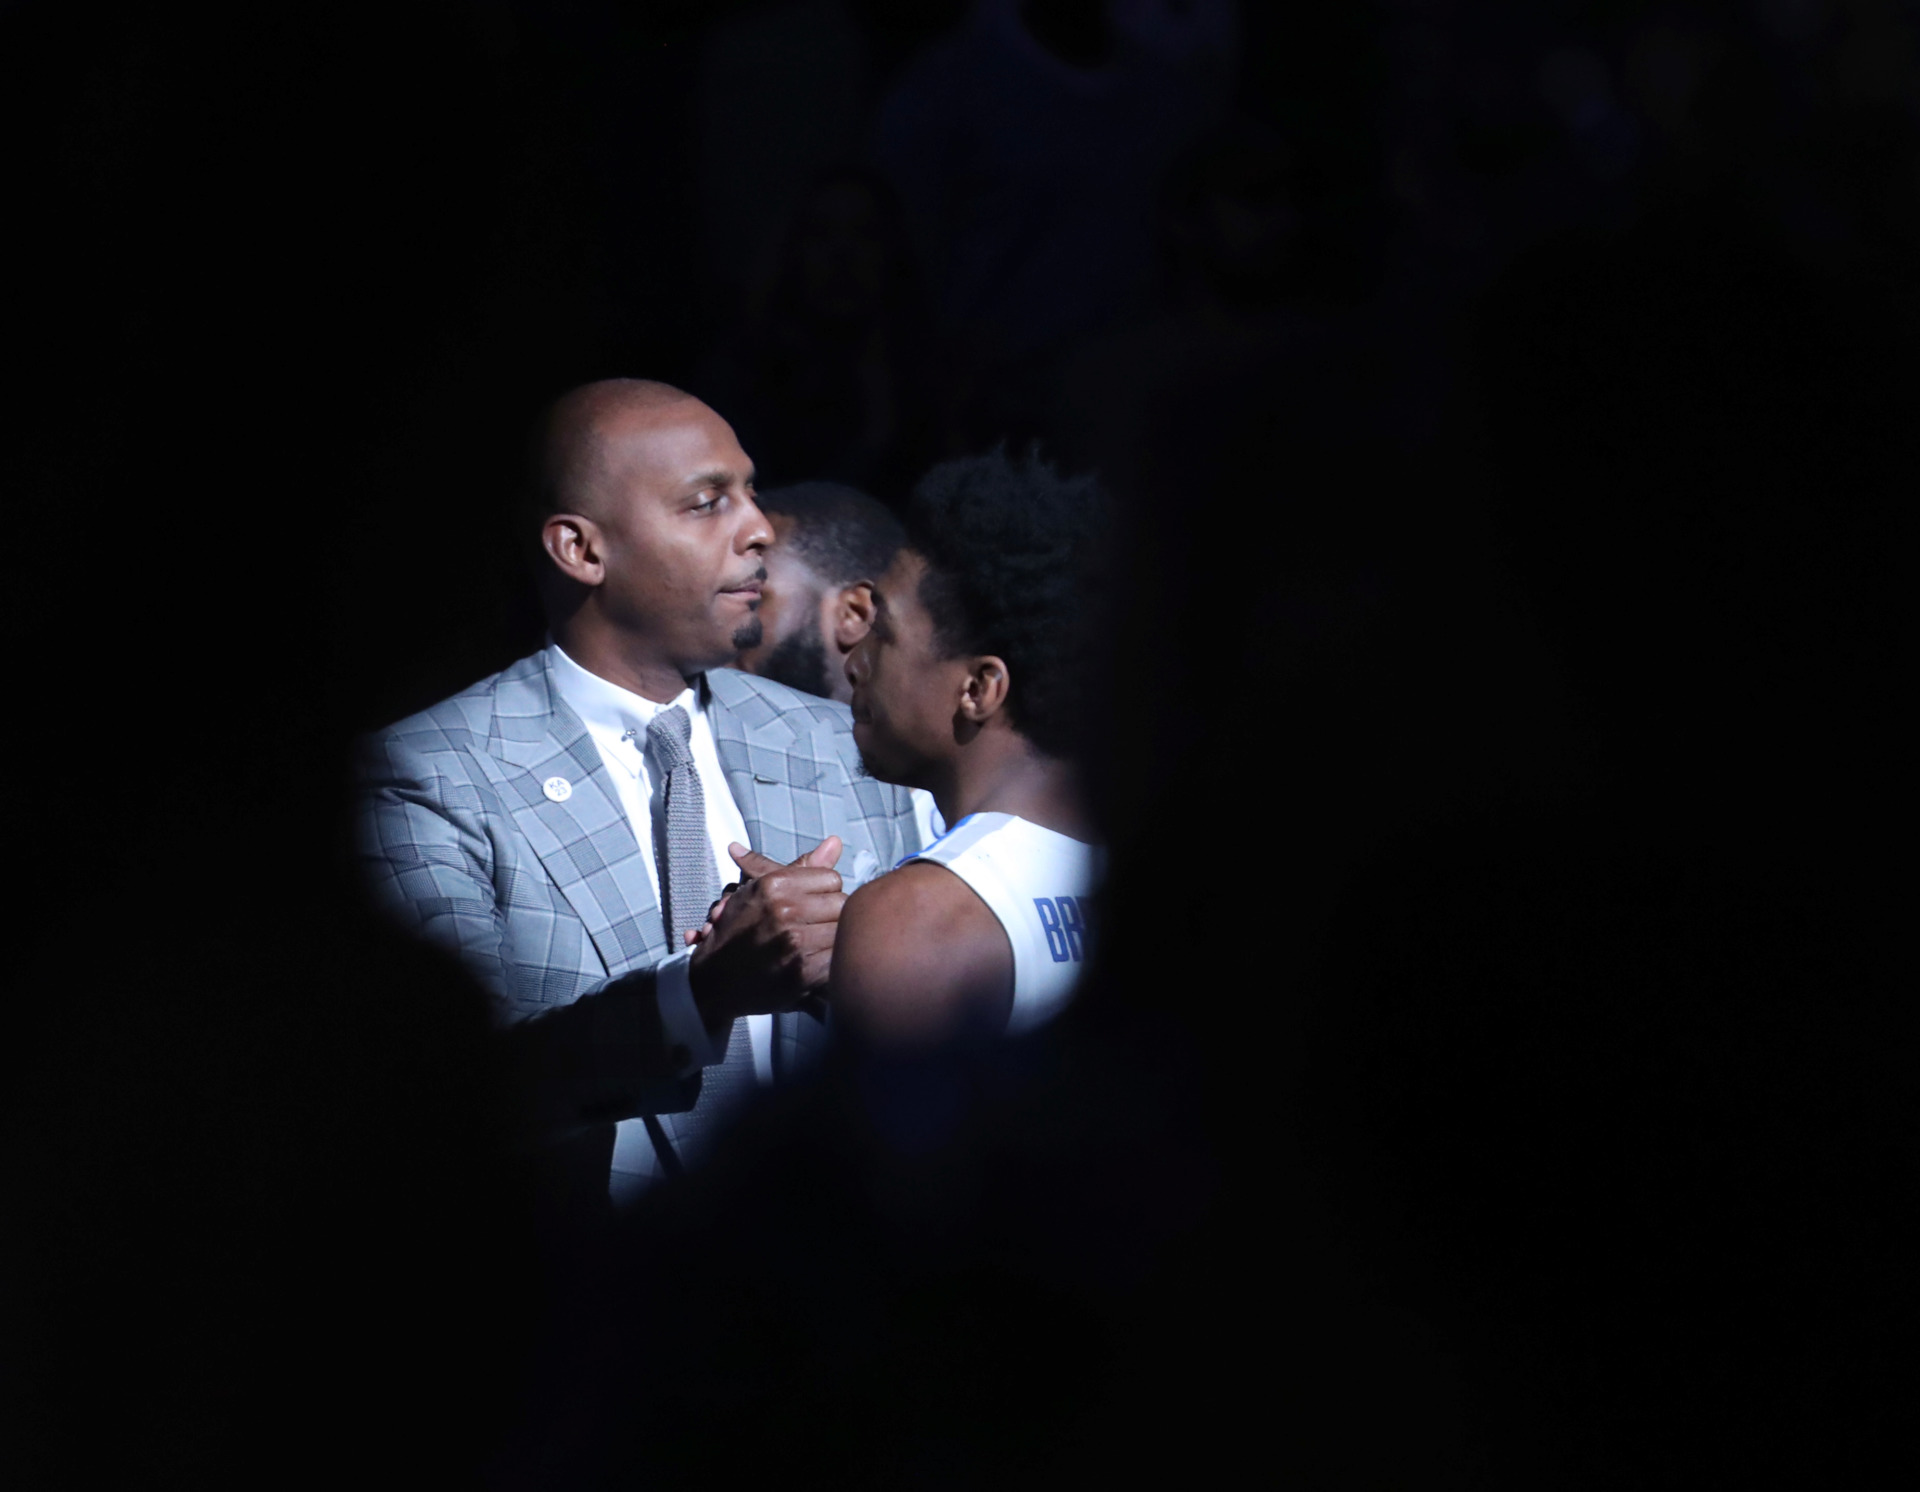 <strong>Memphis Tigers coach Penny Hardaway greets Kareem Brewton Jr. before the start of the game against Connecticut Huskies on Sunday, Feb. 10, at FedExForum. The Tigers went on to win, 78-71.</strong>&nbsp;(Karen Pulfer Focht/Special to the Daily Memphian)